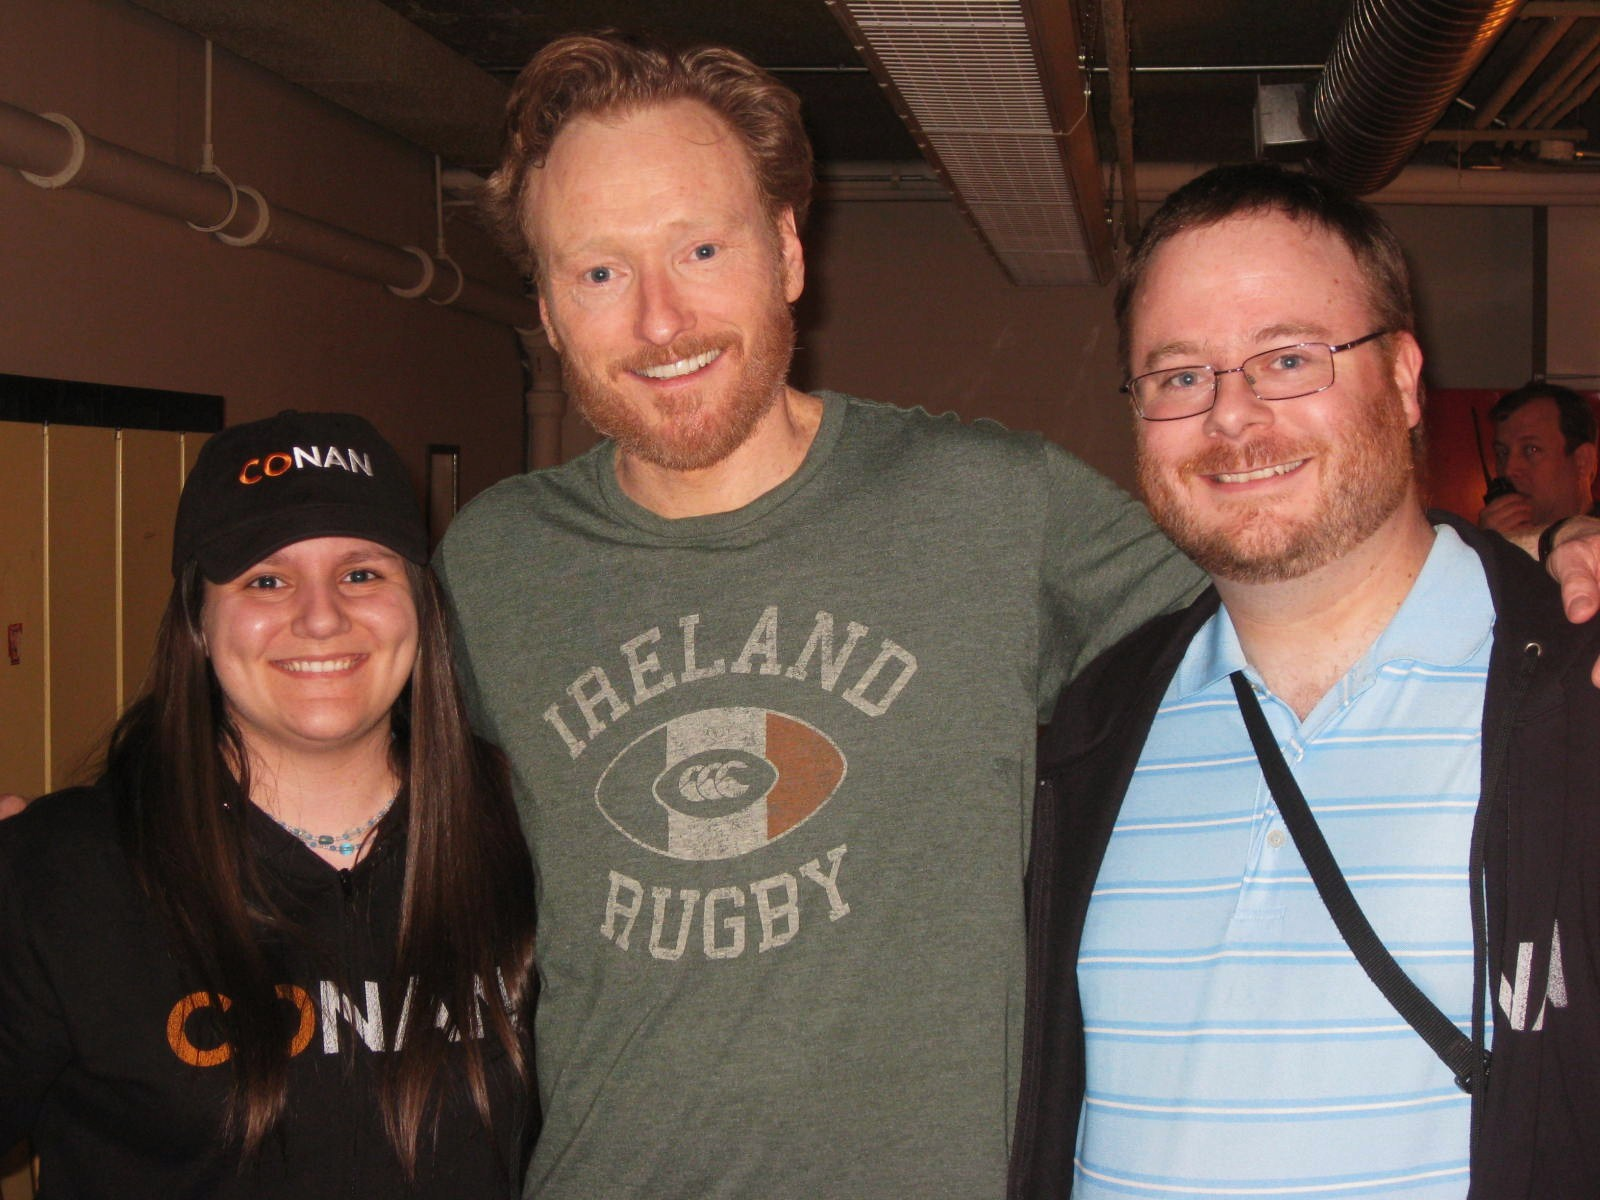 Meeting Conan O'Brian on the eve of my birthday: April 14, 2010.    Left to right: Jessie Smith, Conan O'Brian and Steven Lee.